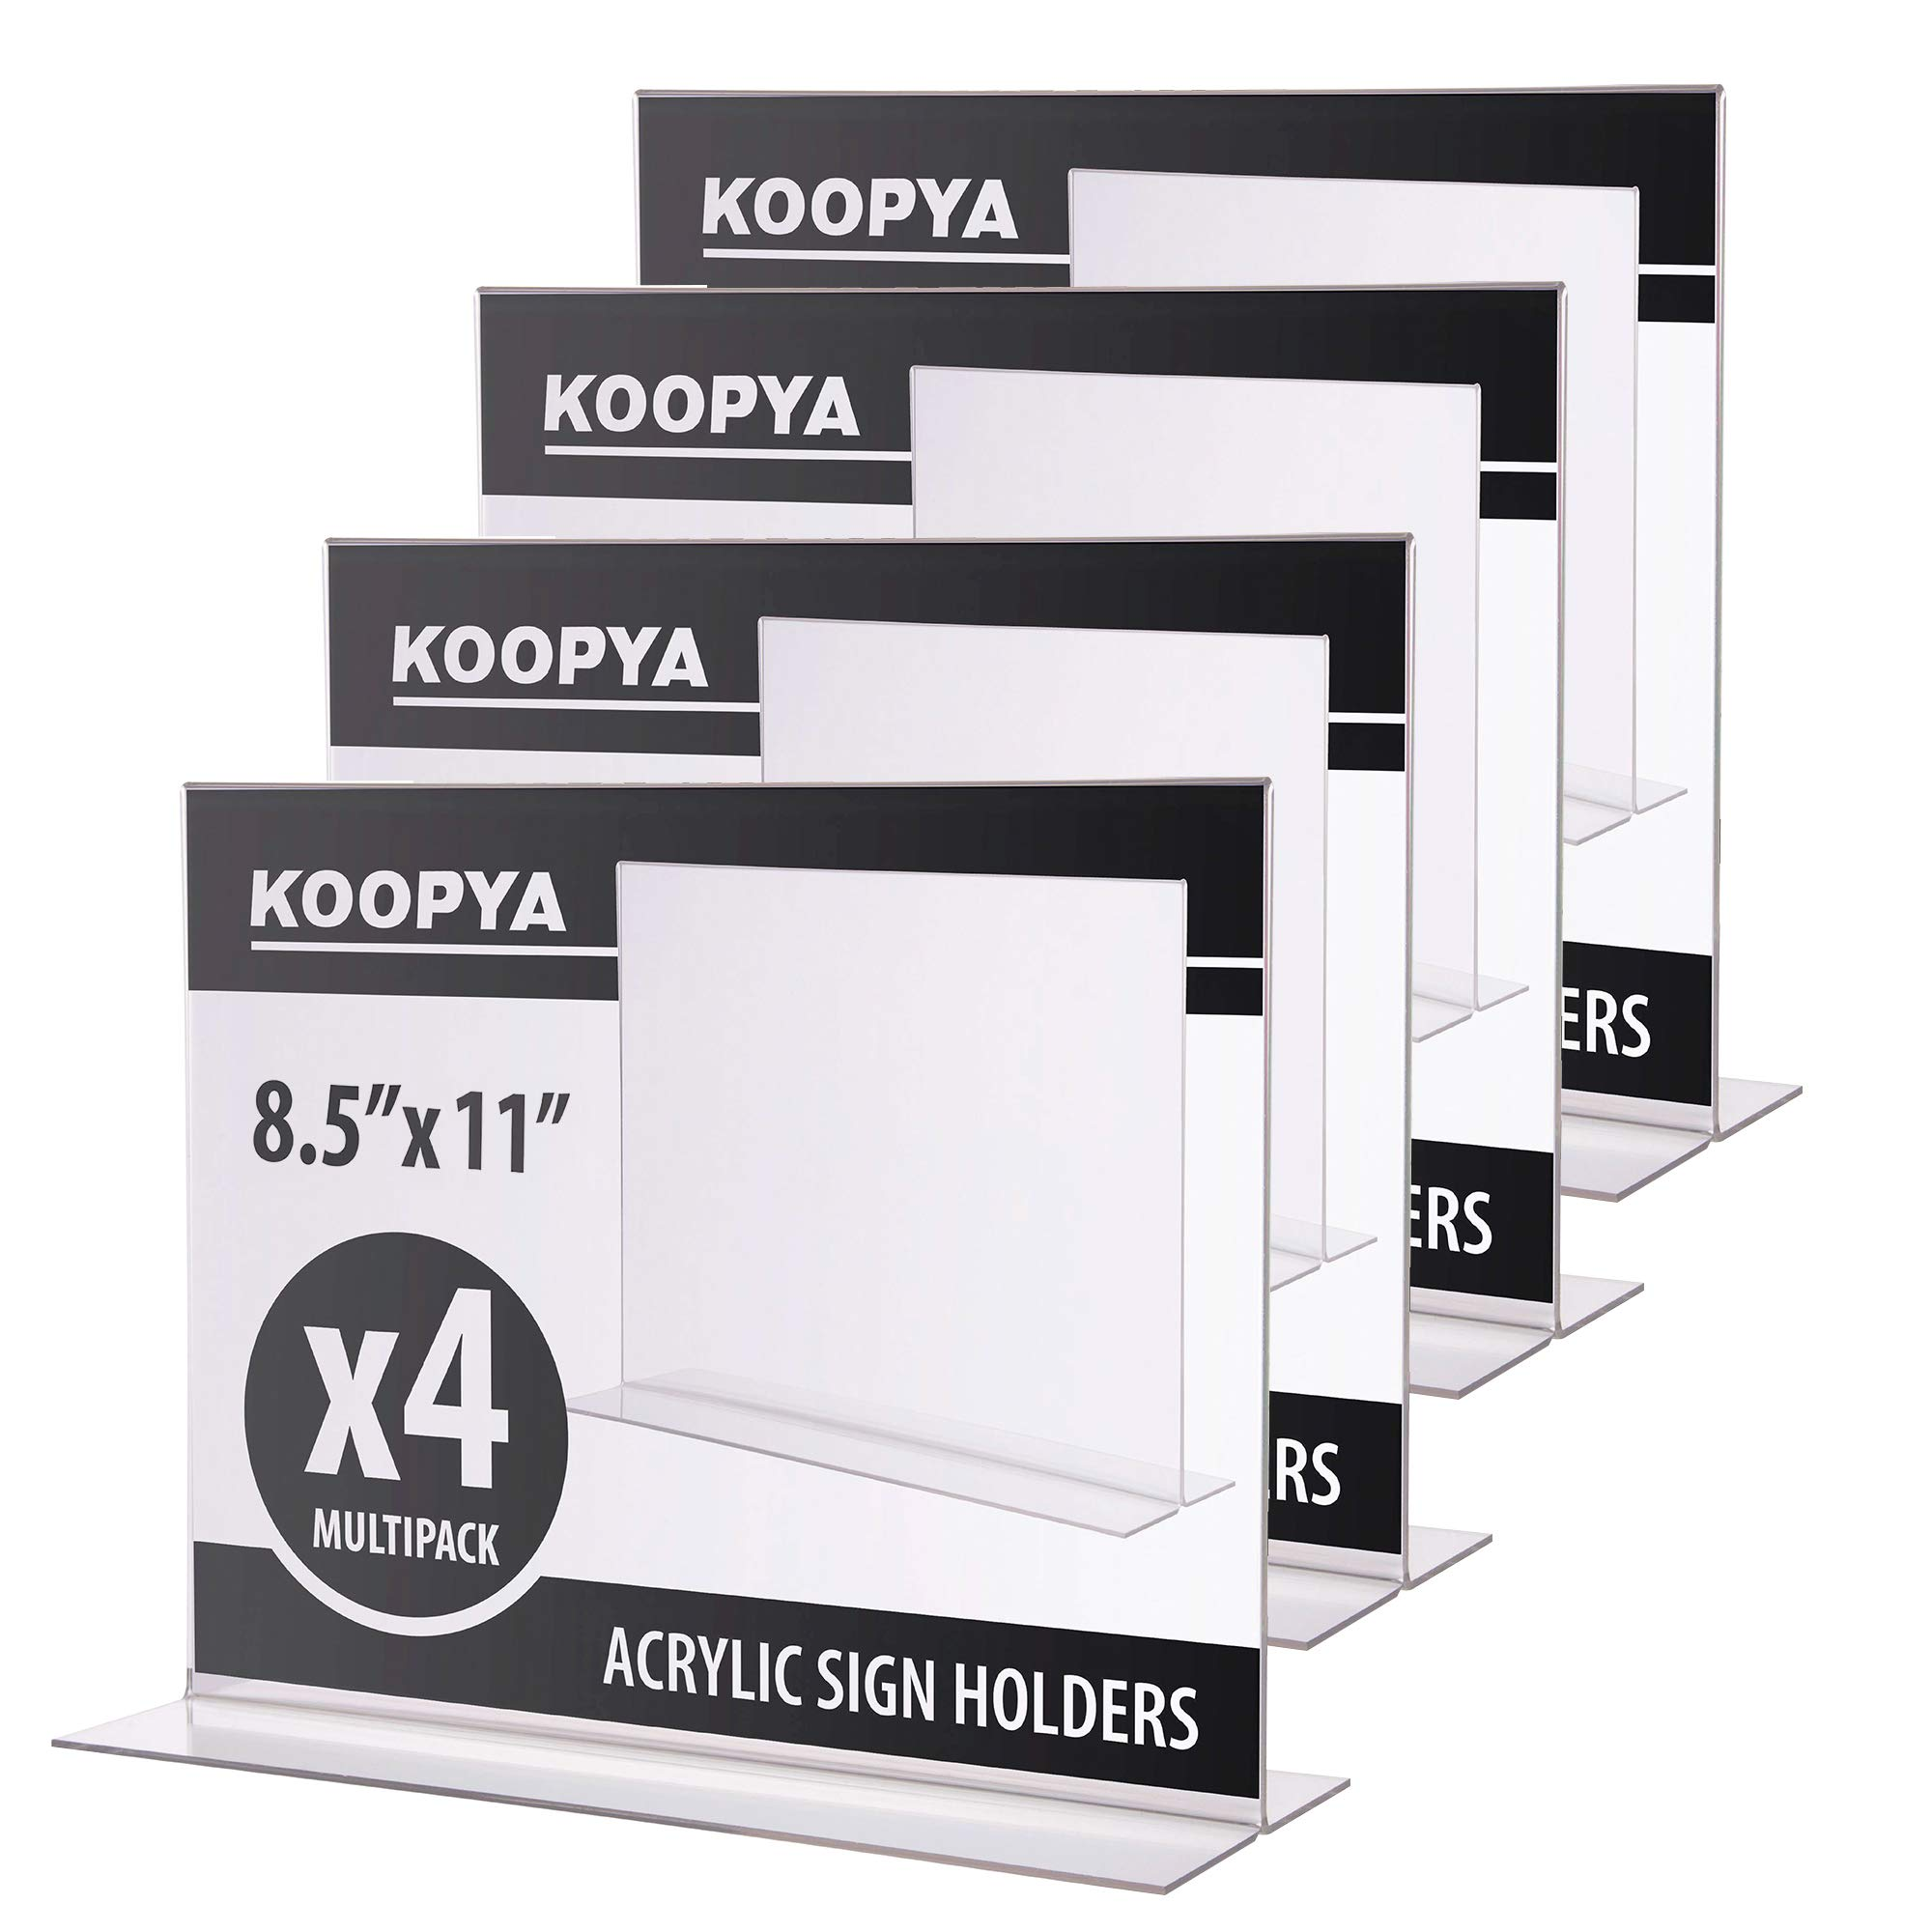 Acrylic Sign Holder 8.5'' x 11'' - Thick Durable Quality for Horizontal Ad Display, Menu, Photo, Pack of 4 by Koopya